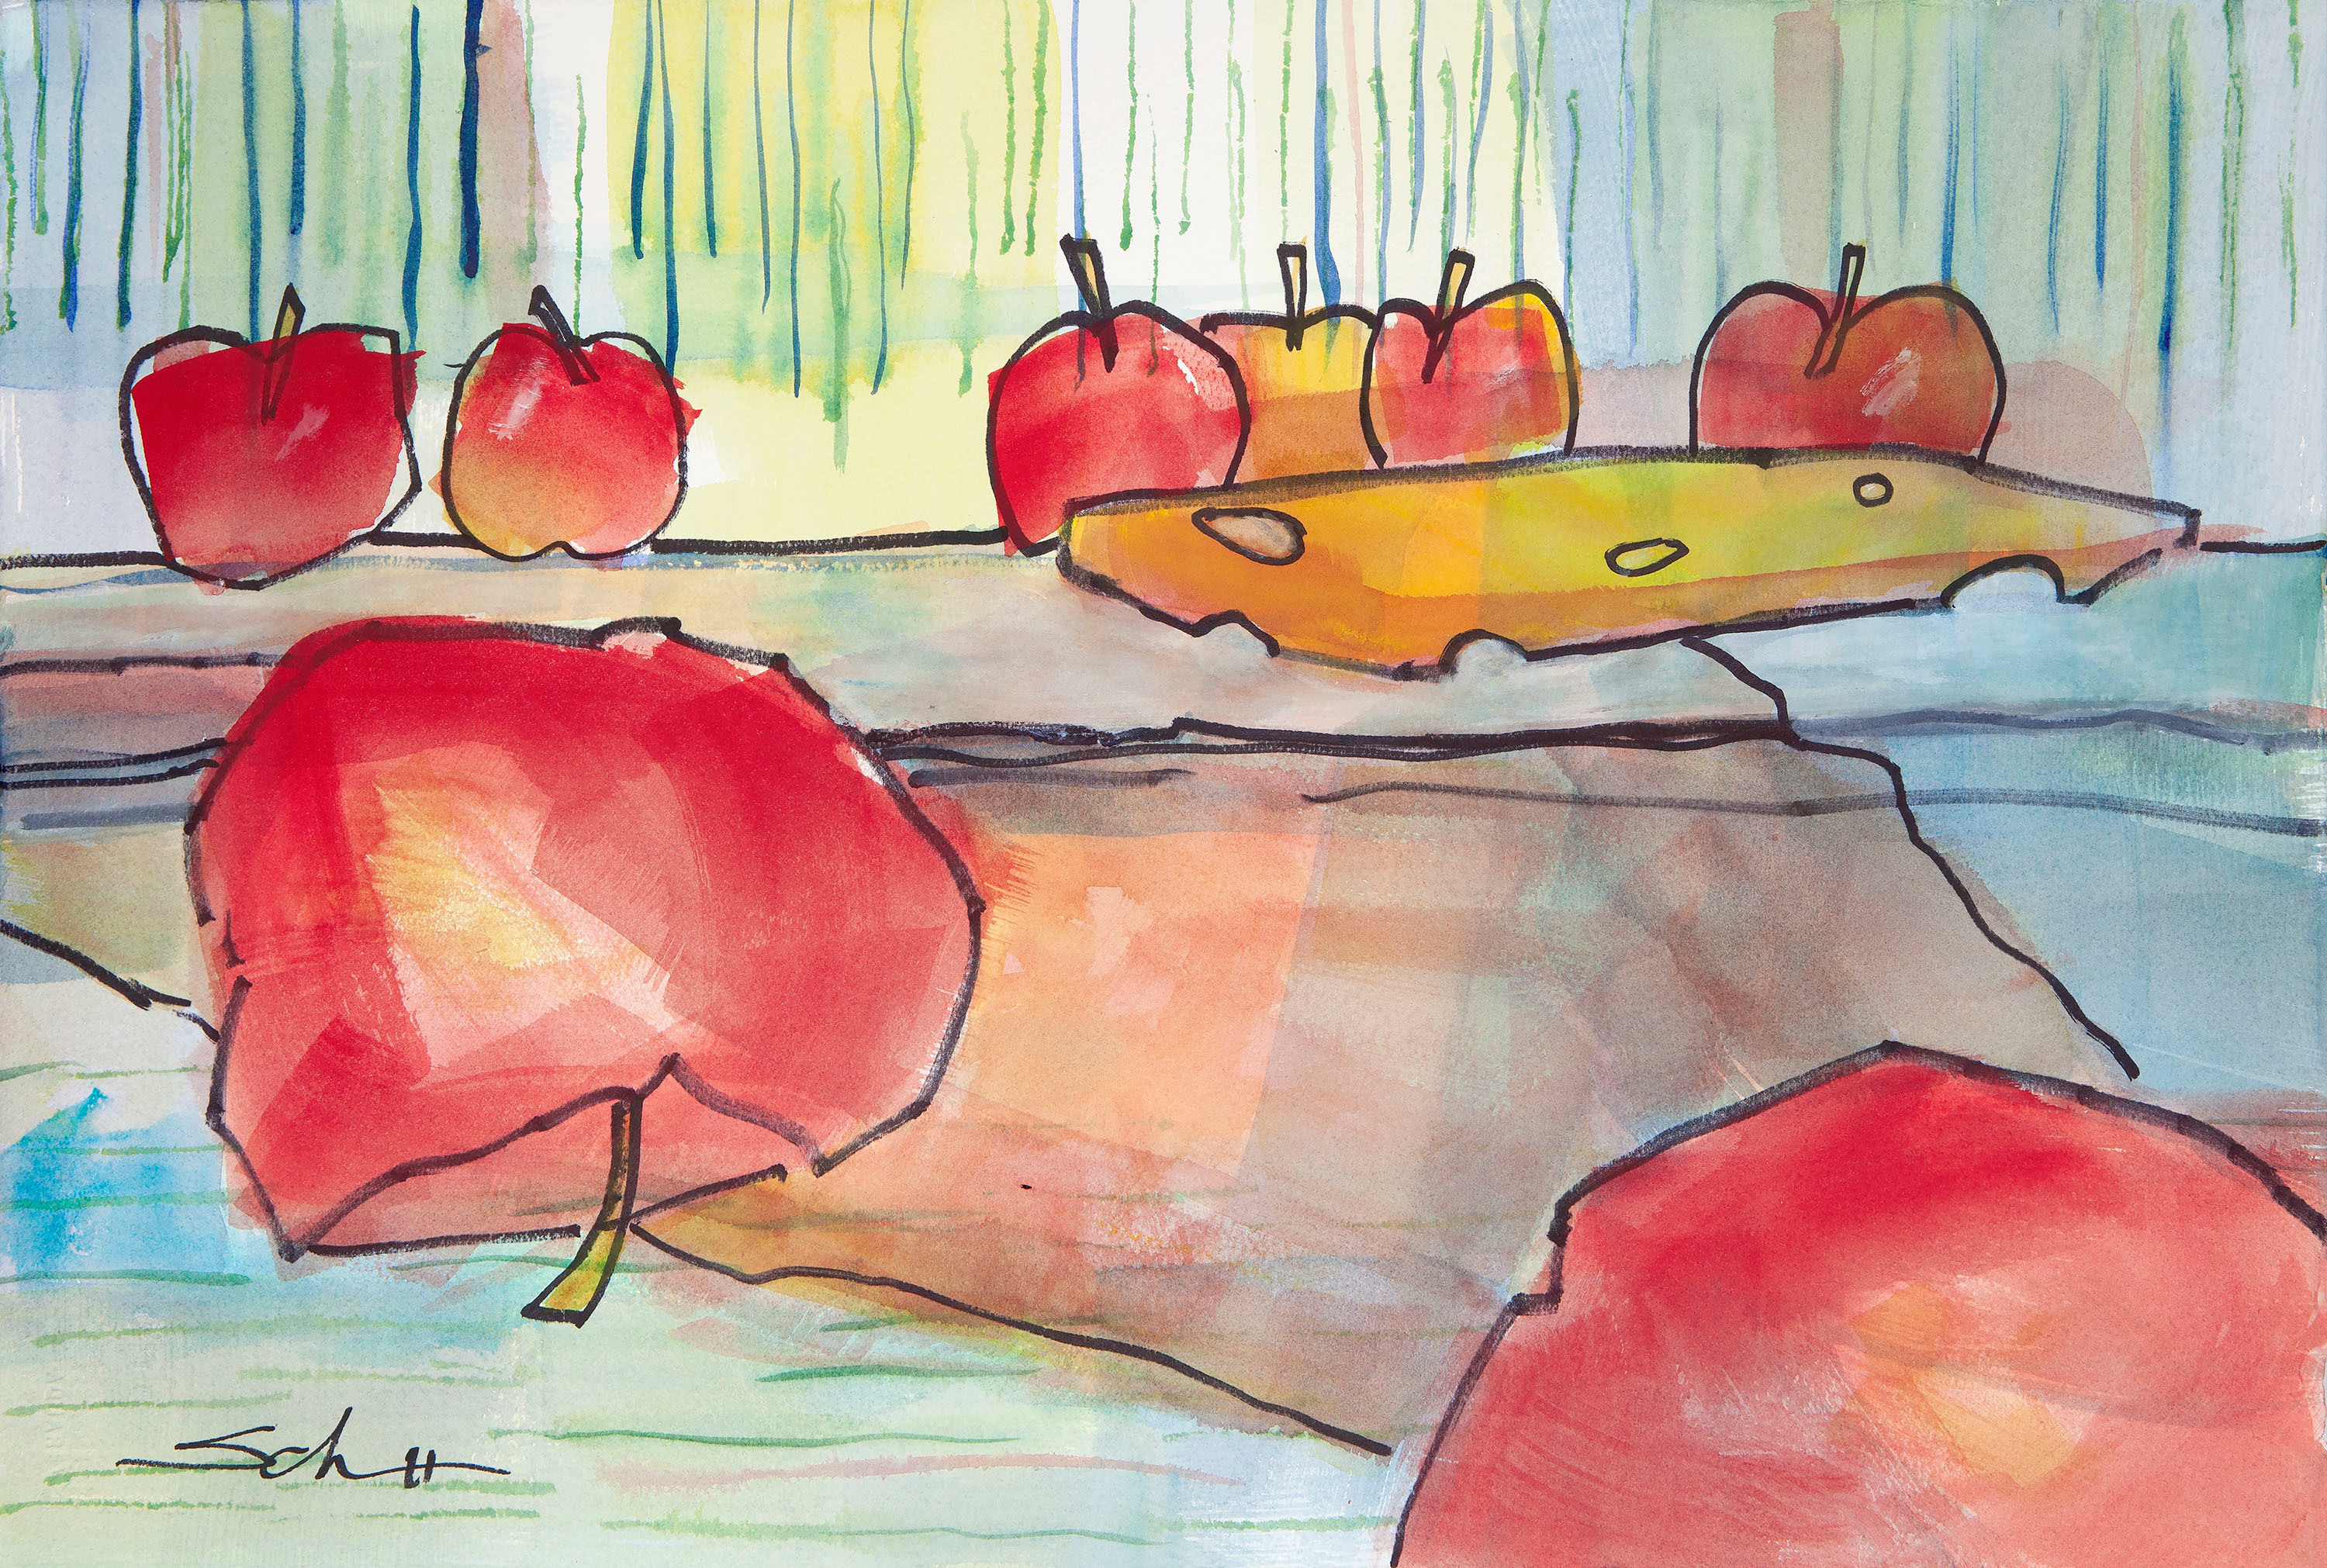 Apples and cheese f8djks